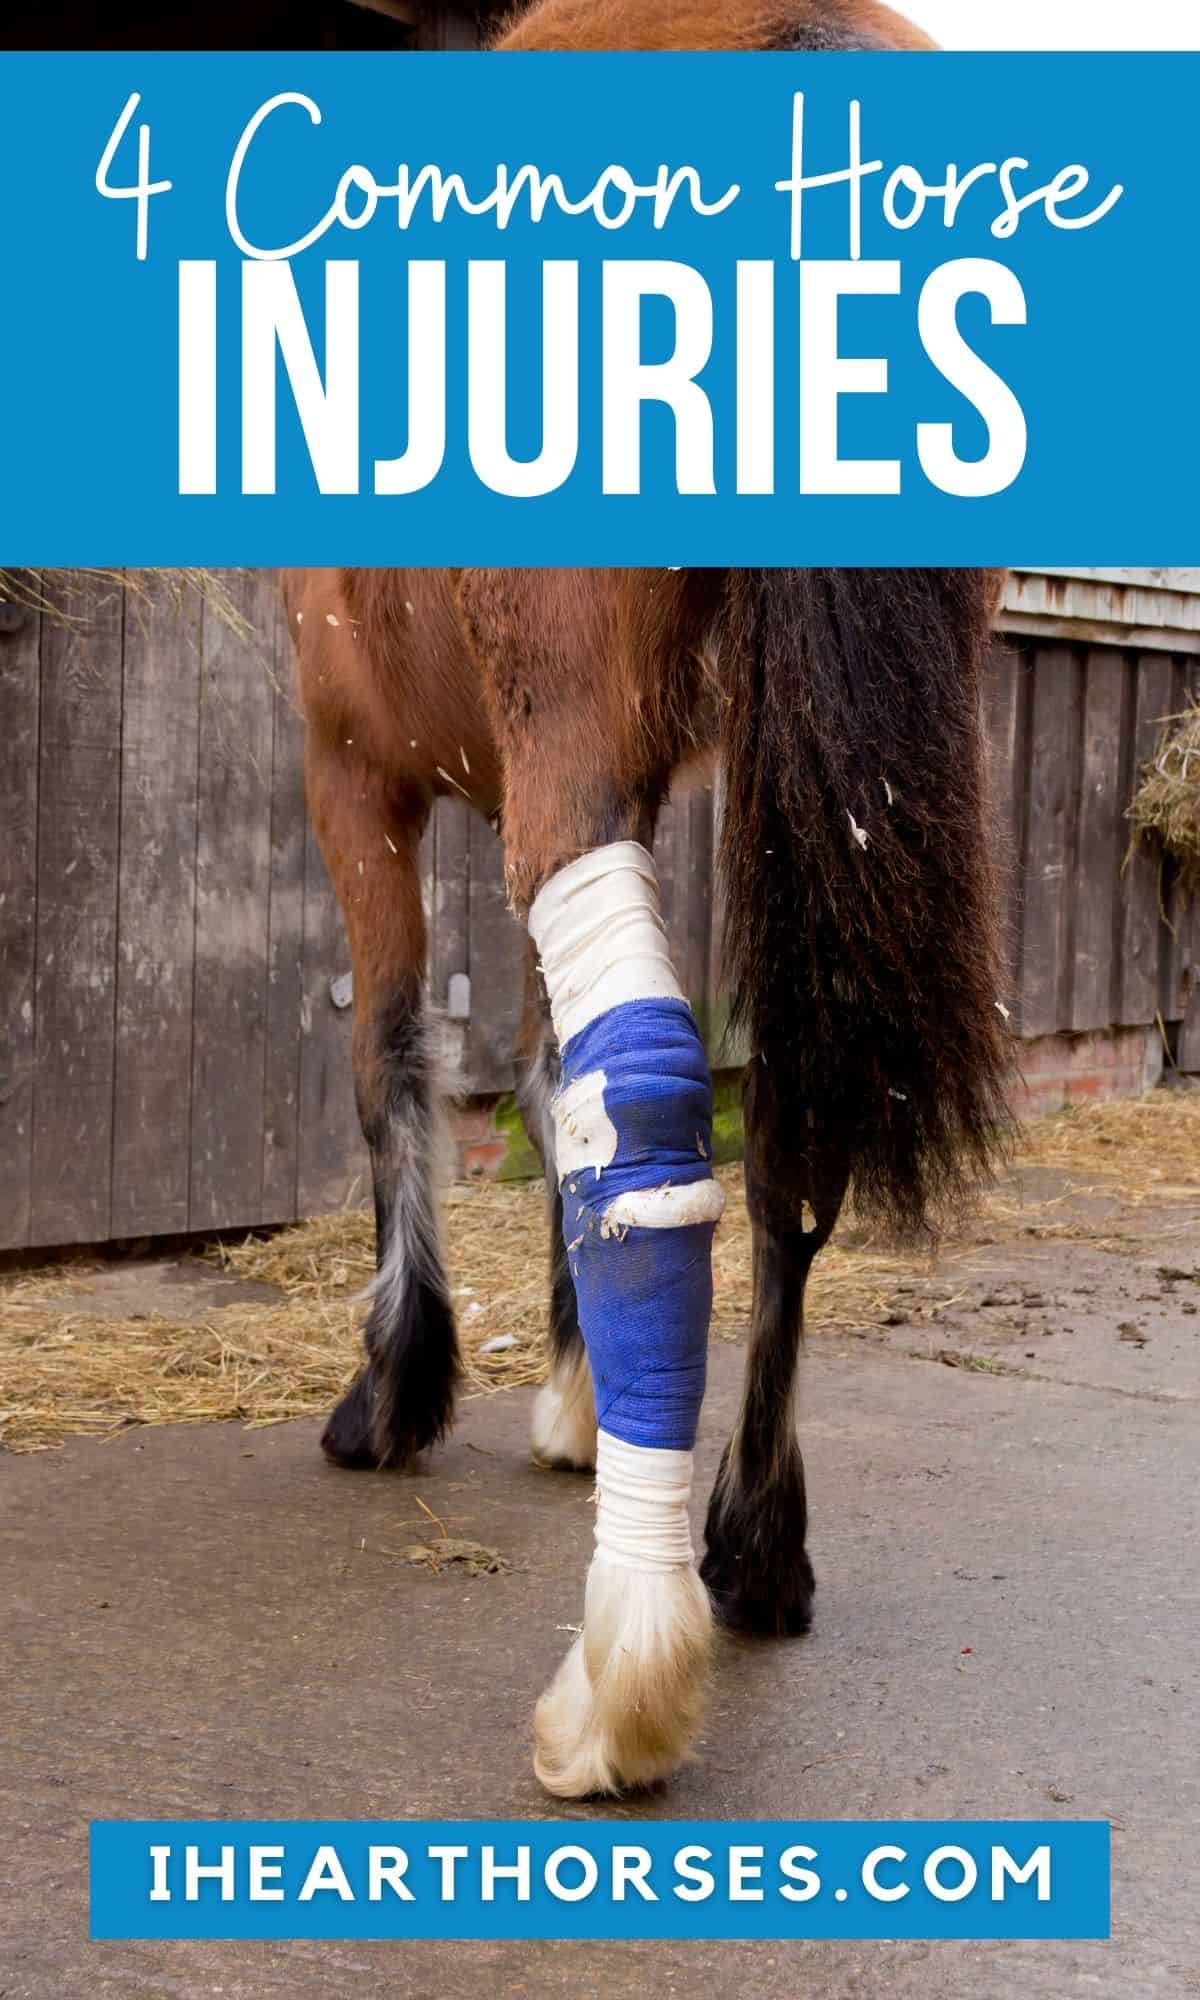 Brown horse with leg wrapped in blue bandage